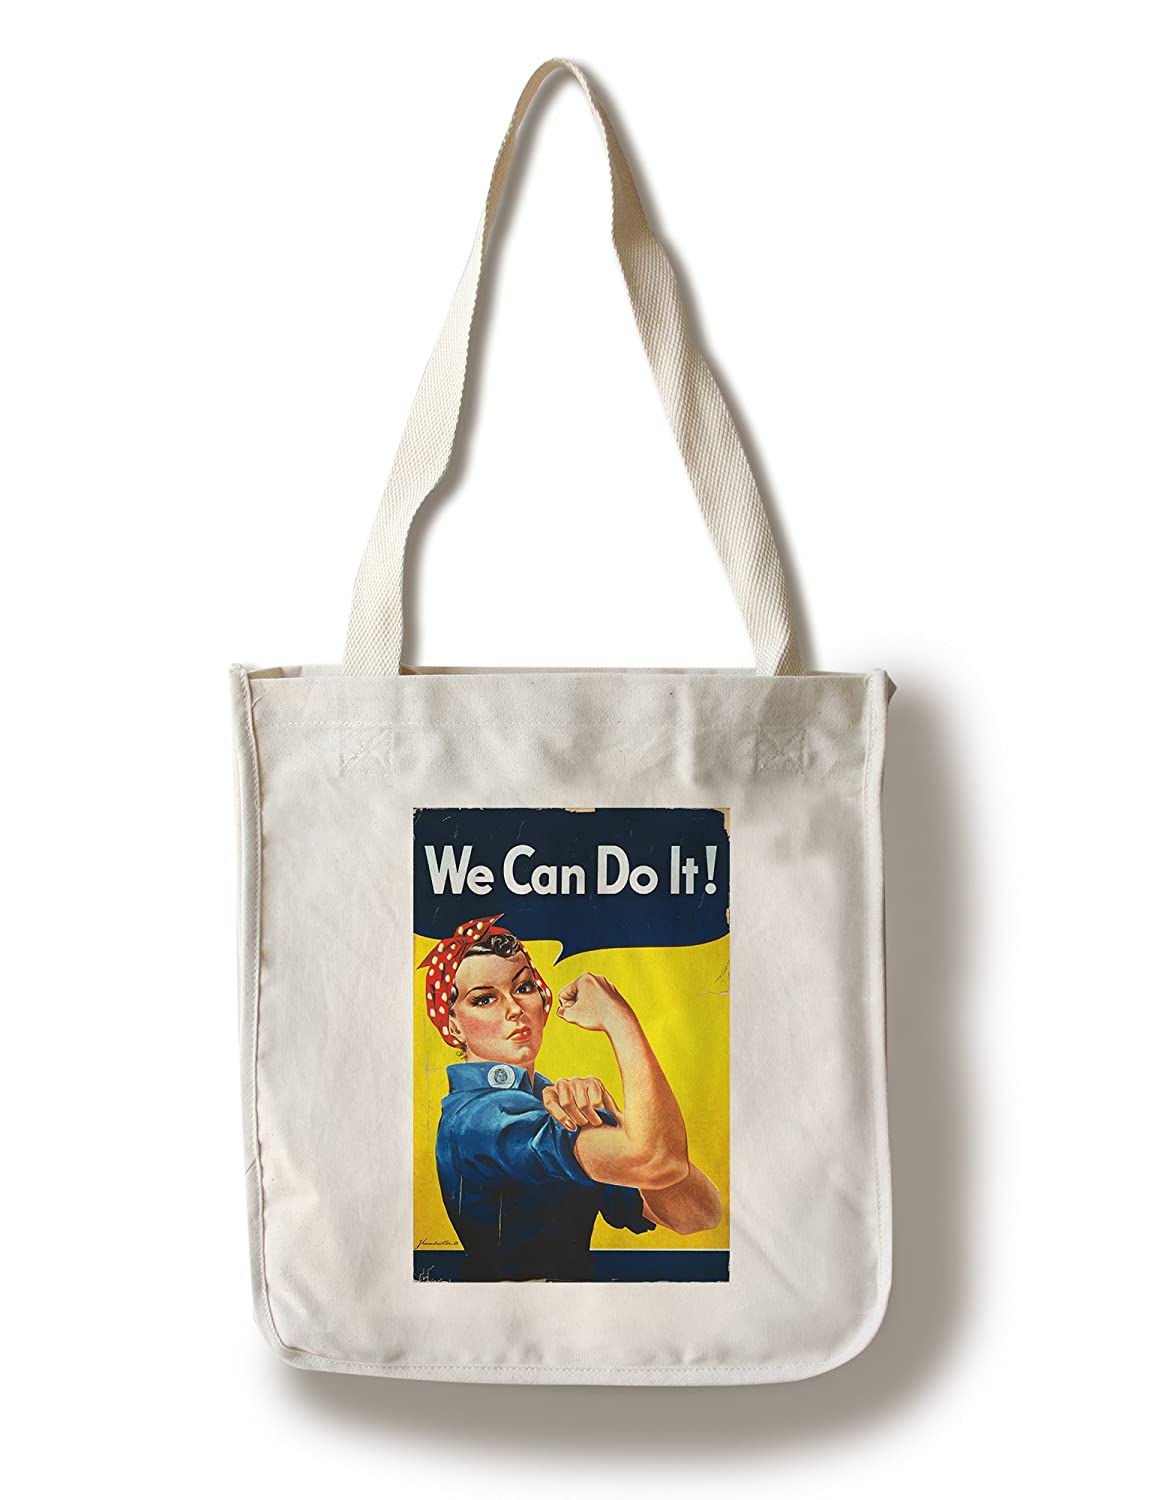 Rosie the Riveter – We Can Do It 。 – ポスター( 100 %コットントートバッグ – 再利用可能な、まち、Made in America ) B01BOL7TZ2